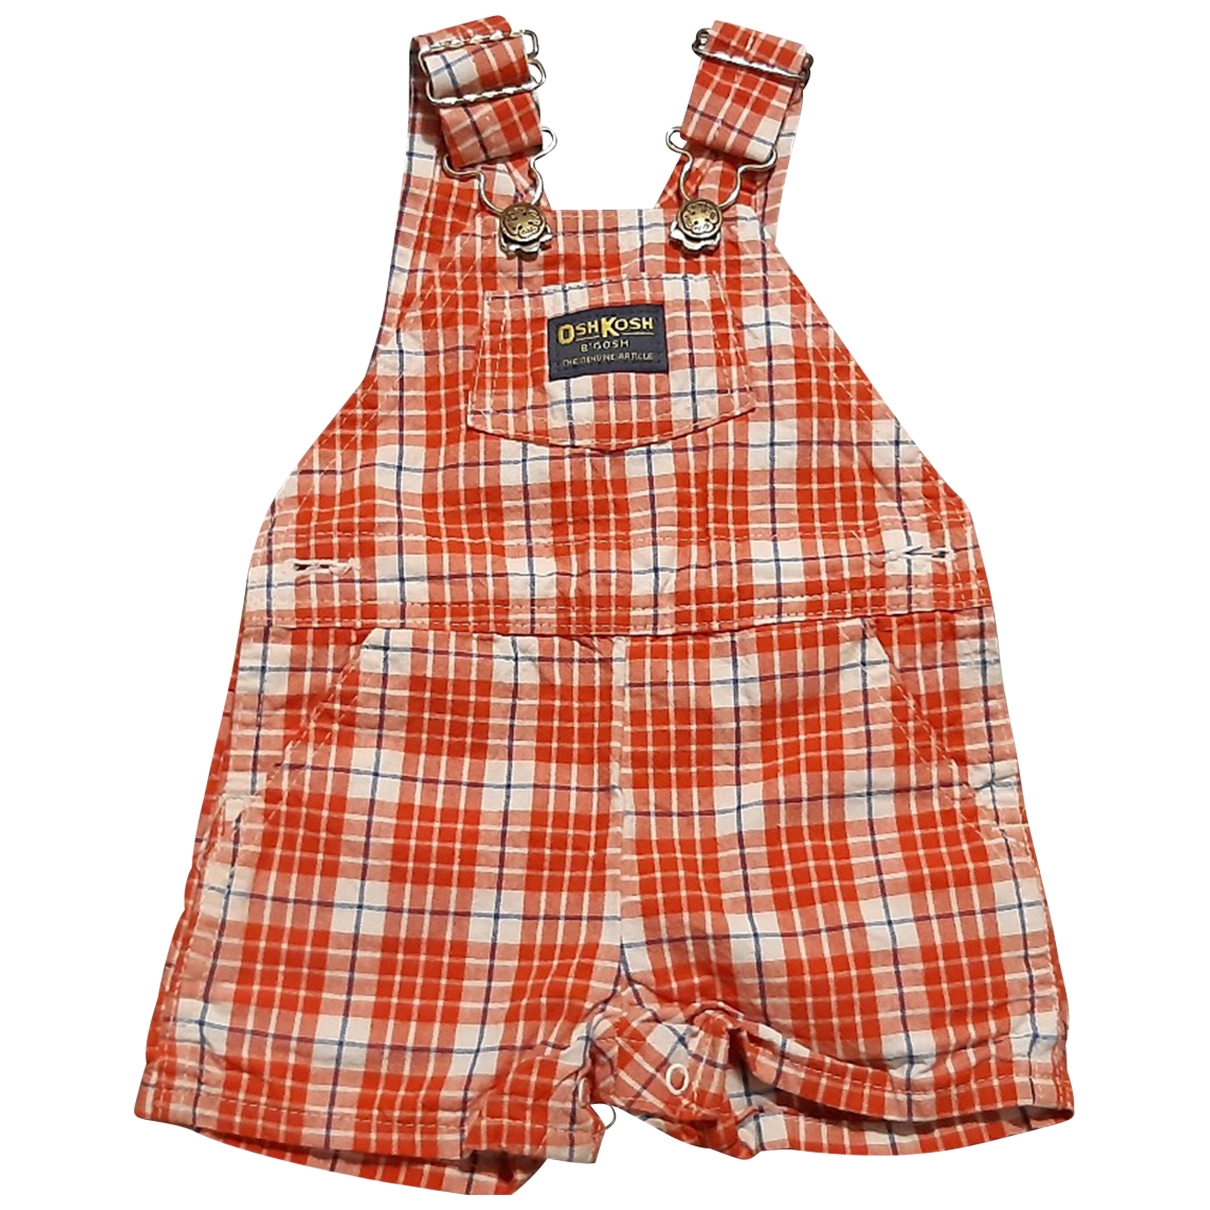 Oshkosh \N Multicolour Denim - Jeans Outfits for Kids 6 months - up to 67cm FR